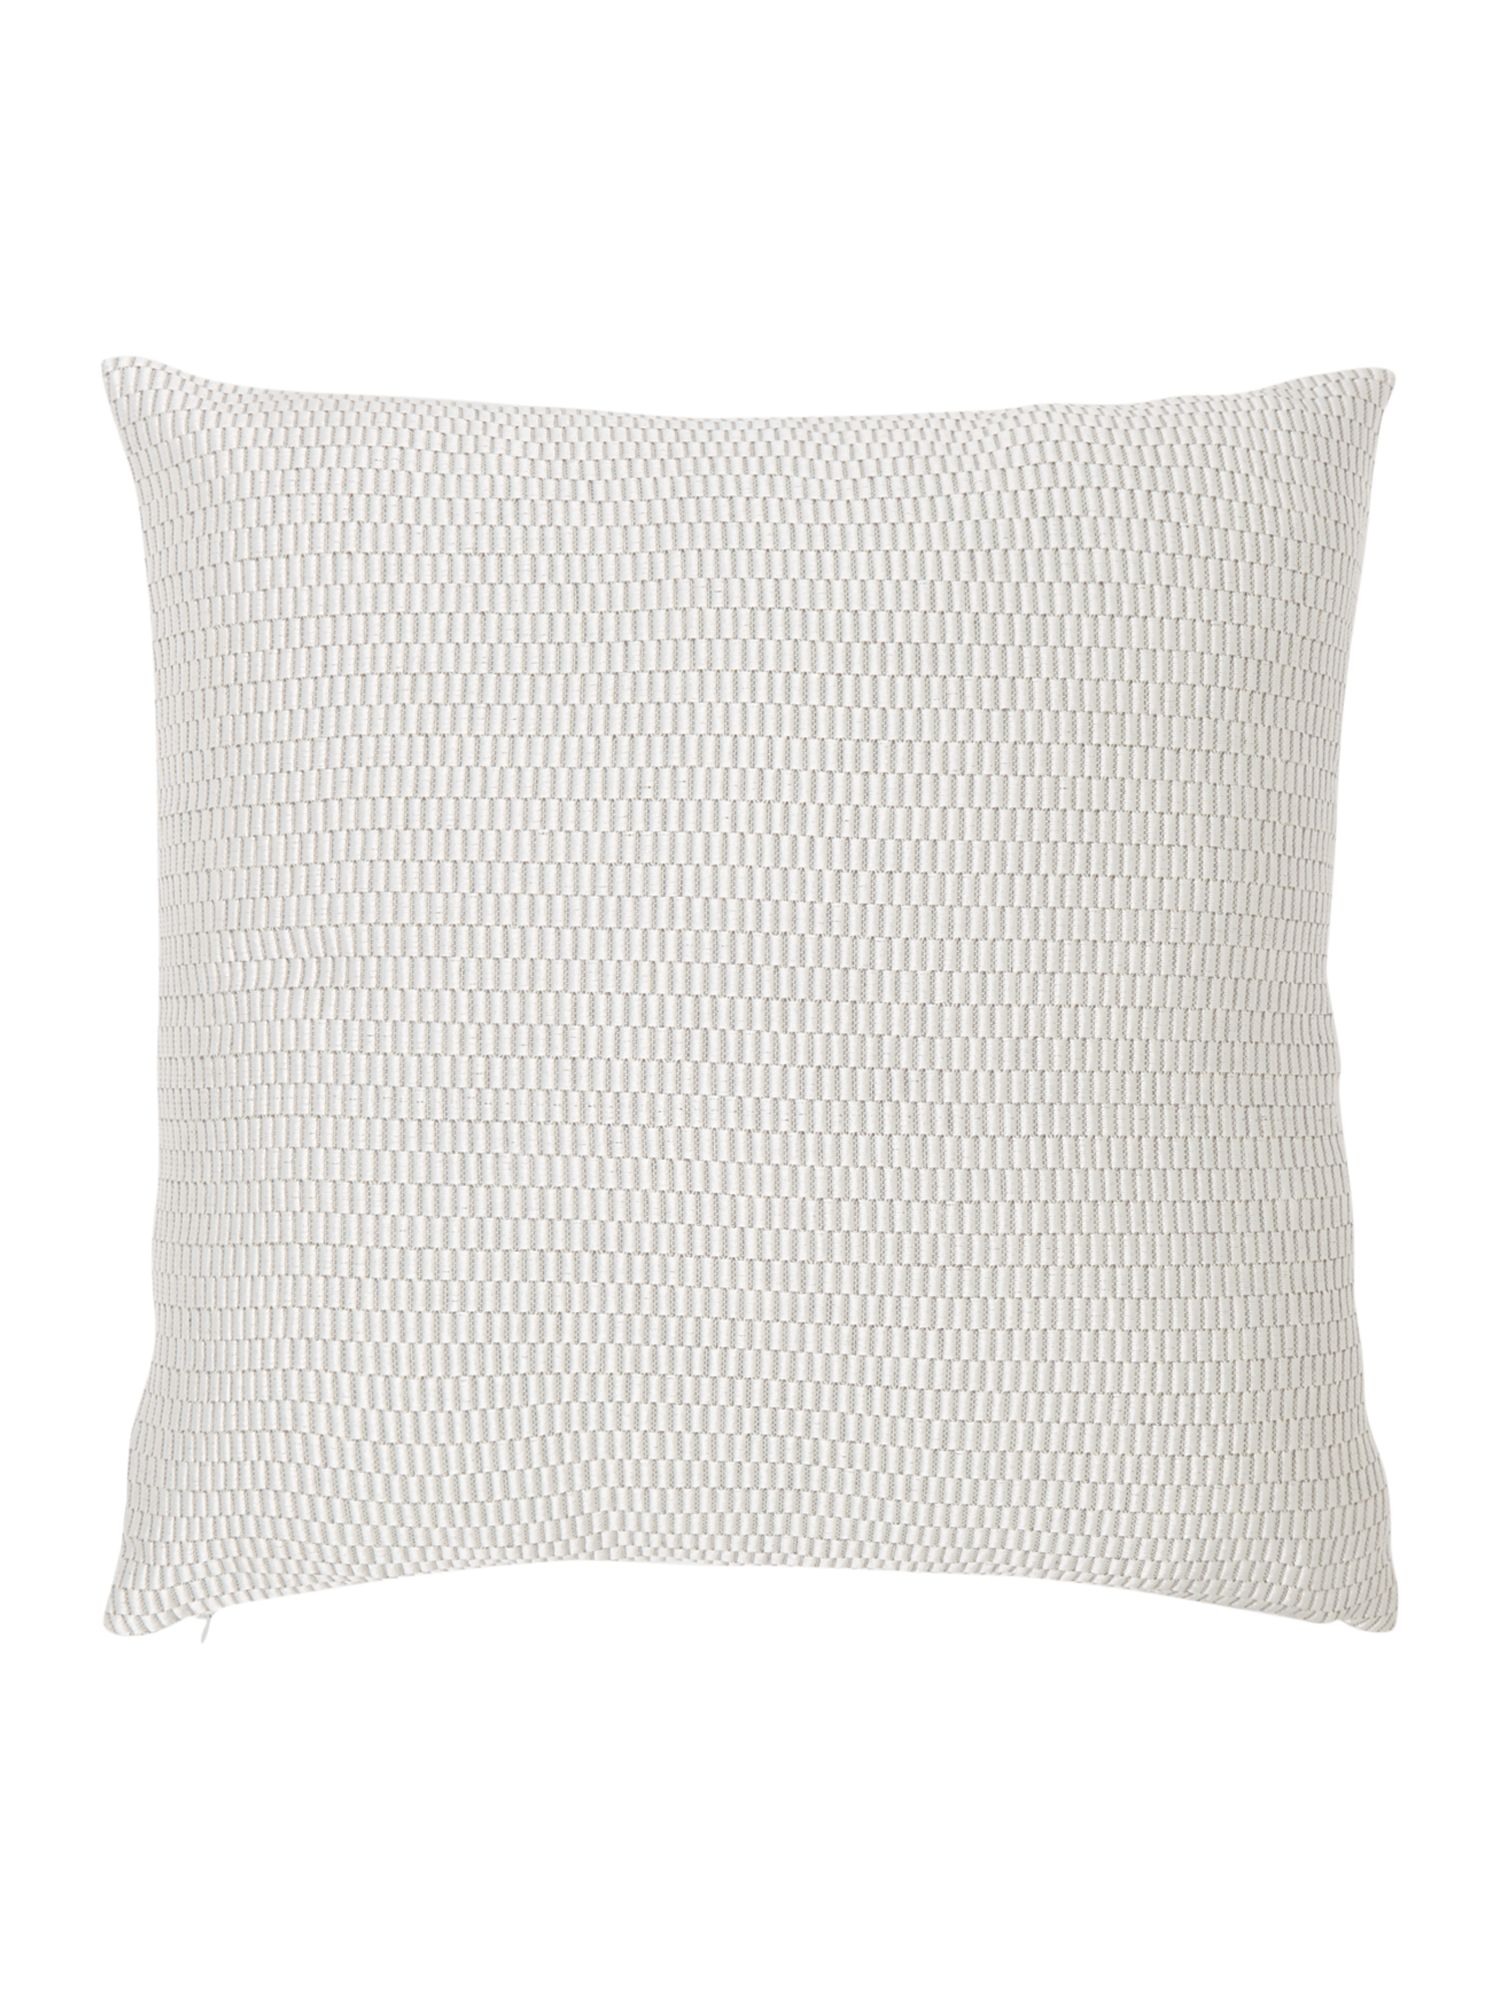 Image of Casa Couture Argento jacquard cushion